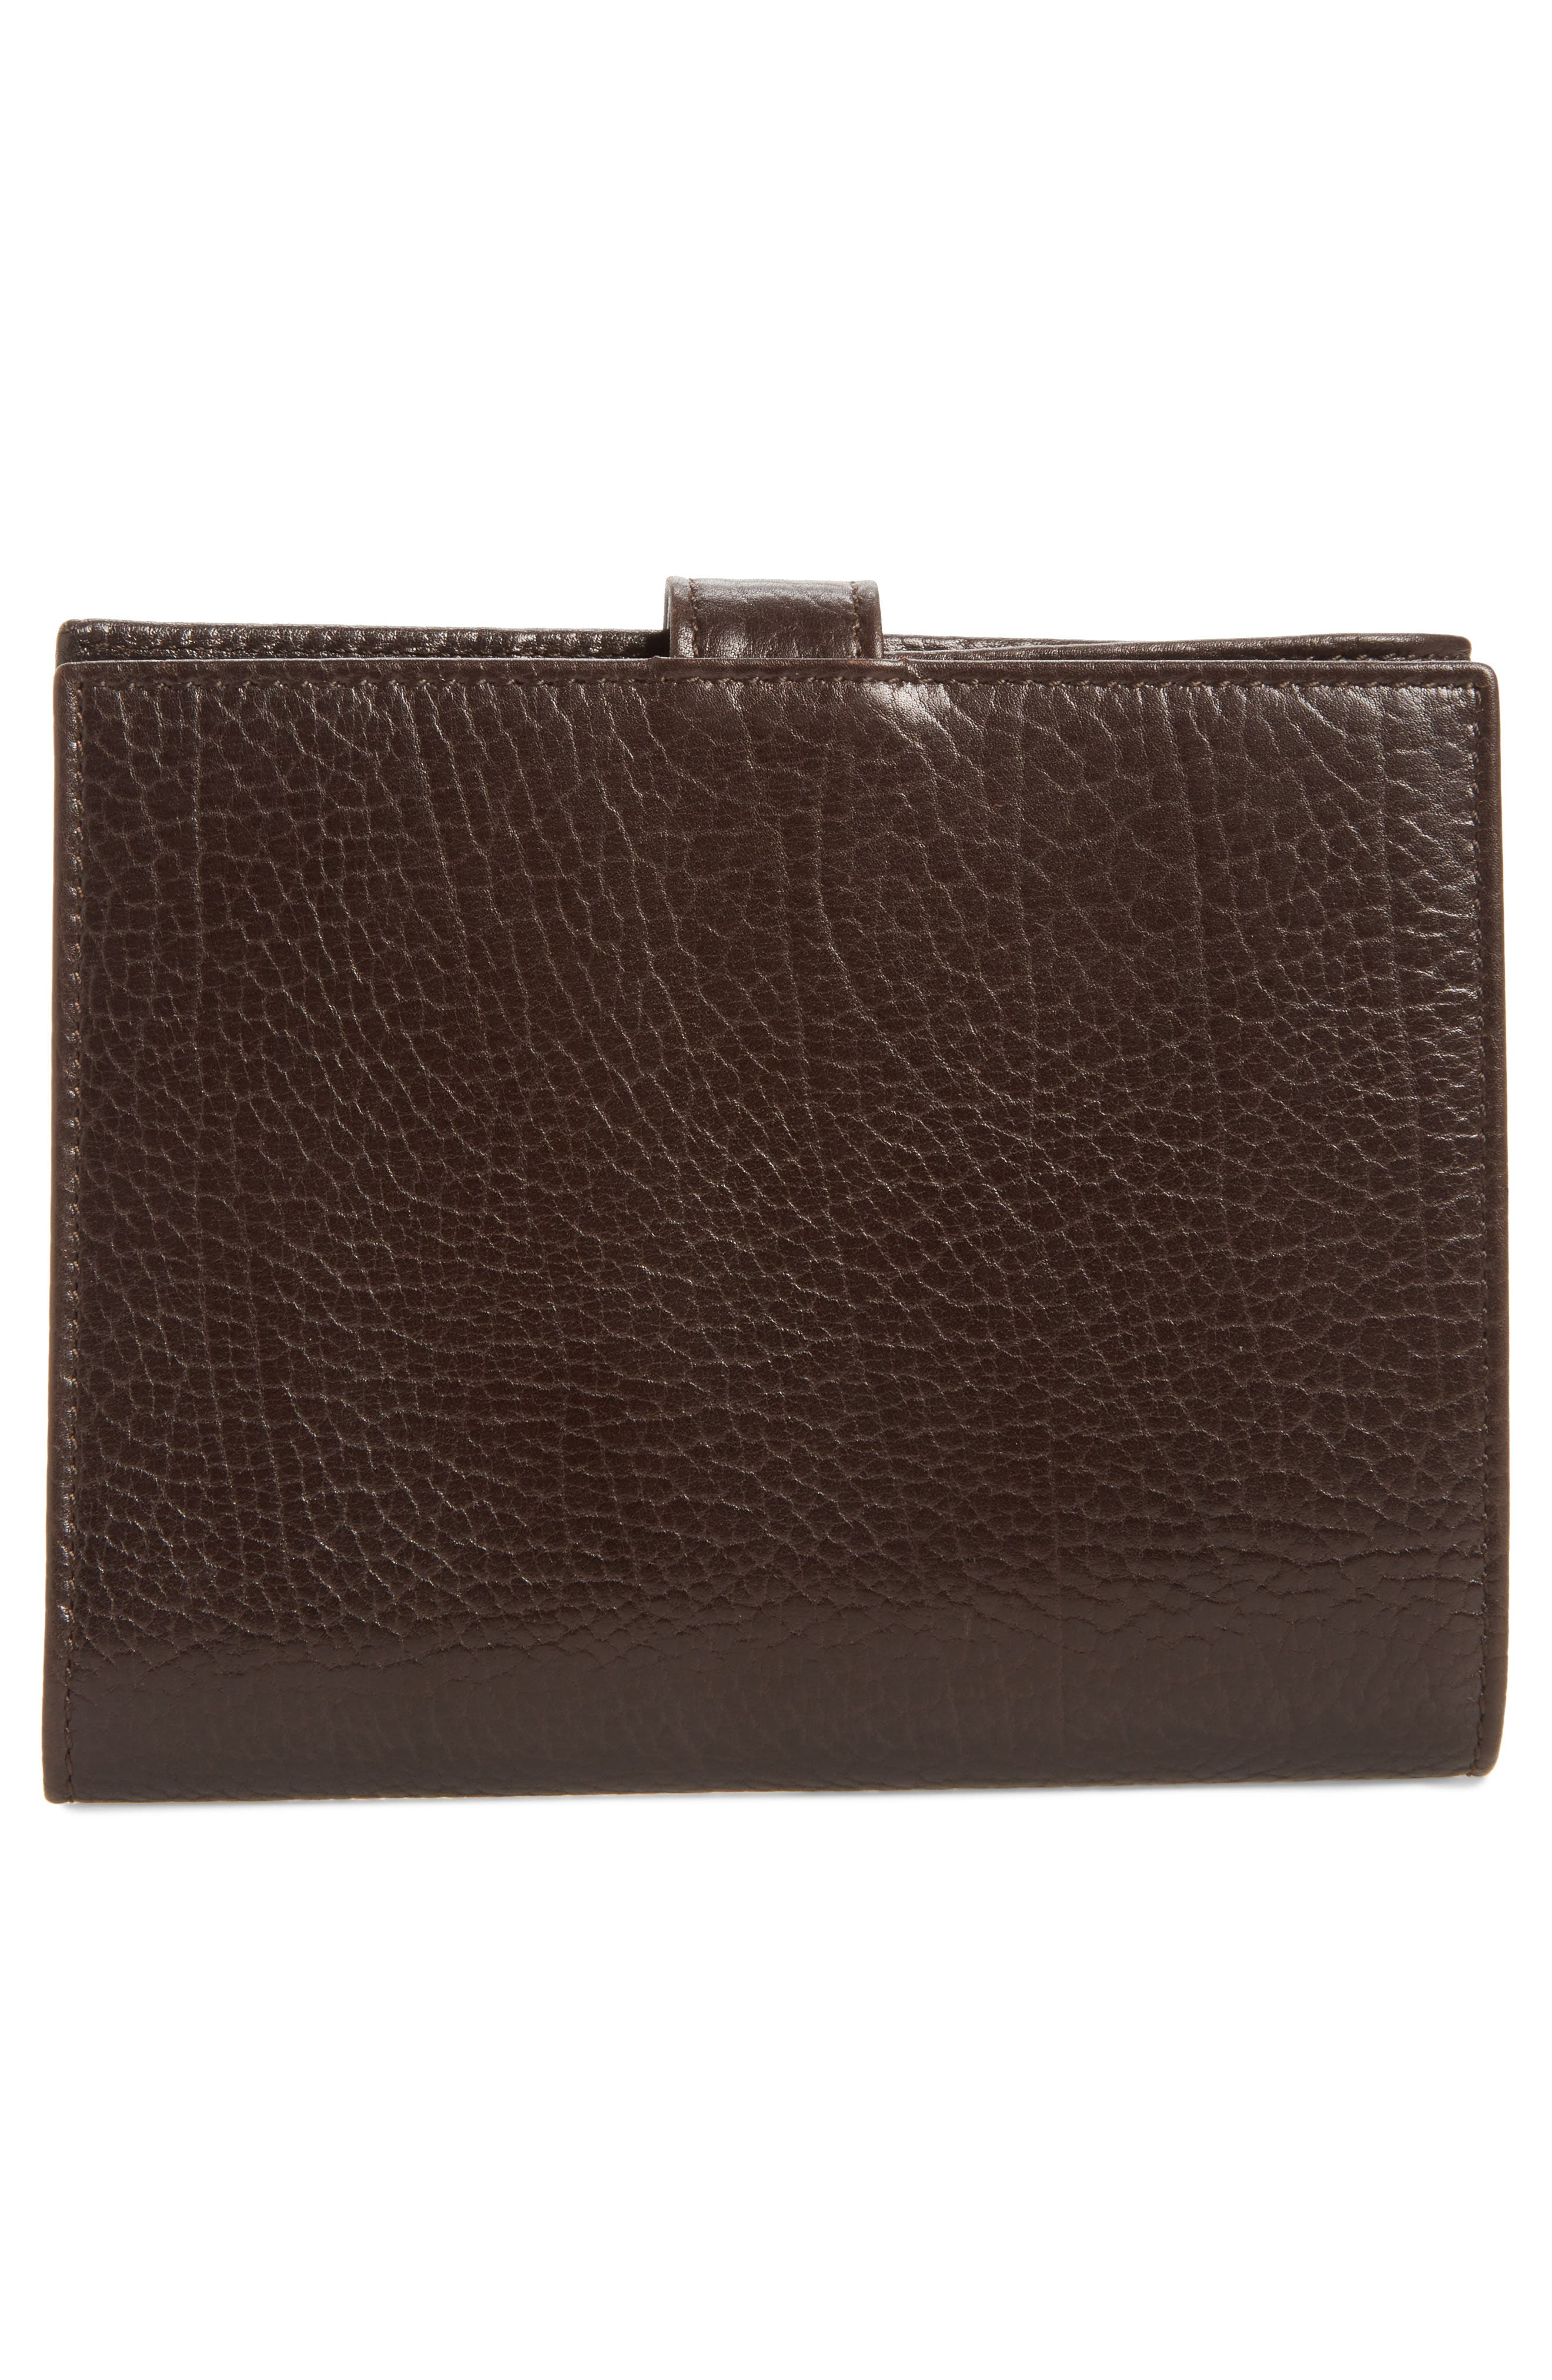 Perseo Leather Travel Wallet,                             Alternate thumbnail 3, color,                             Brown